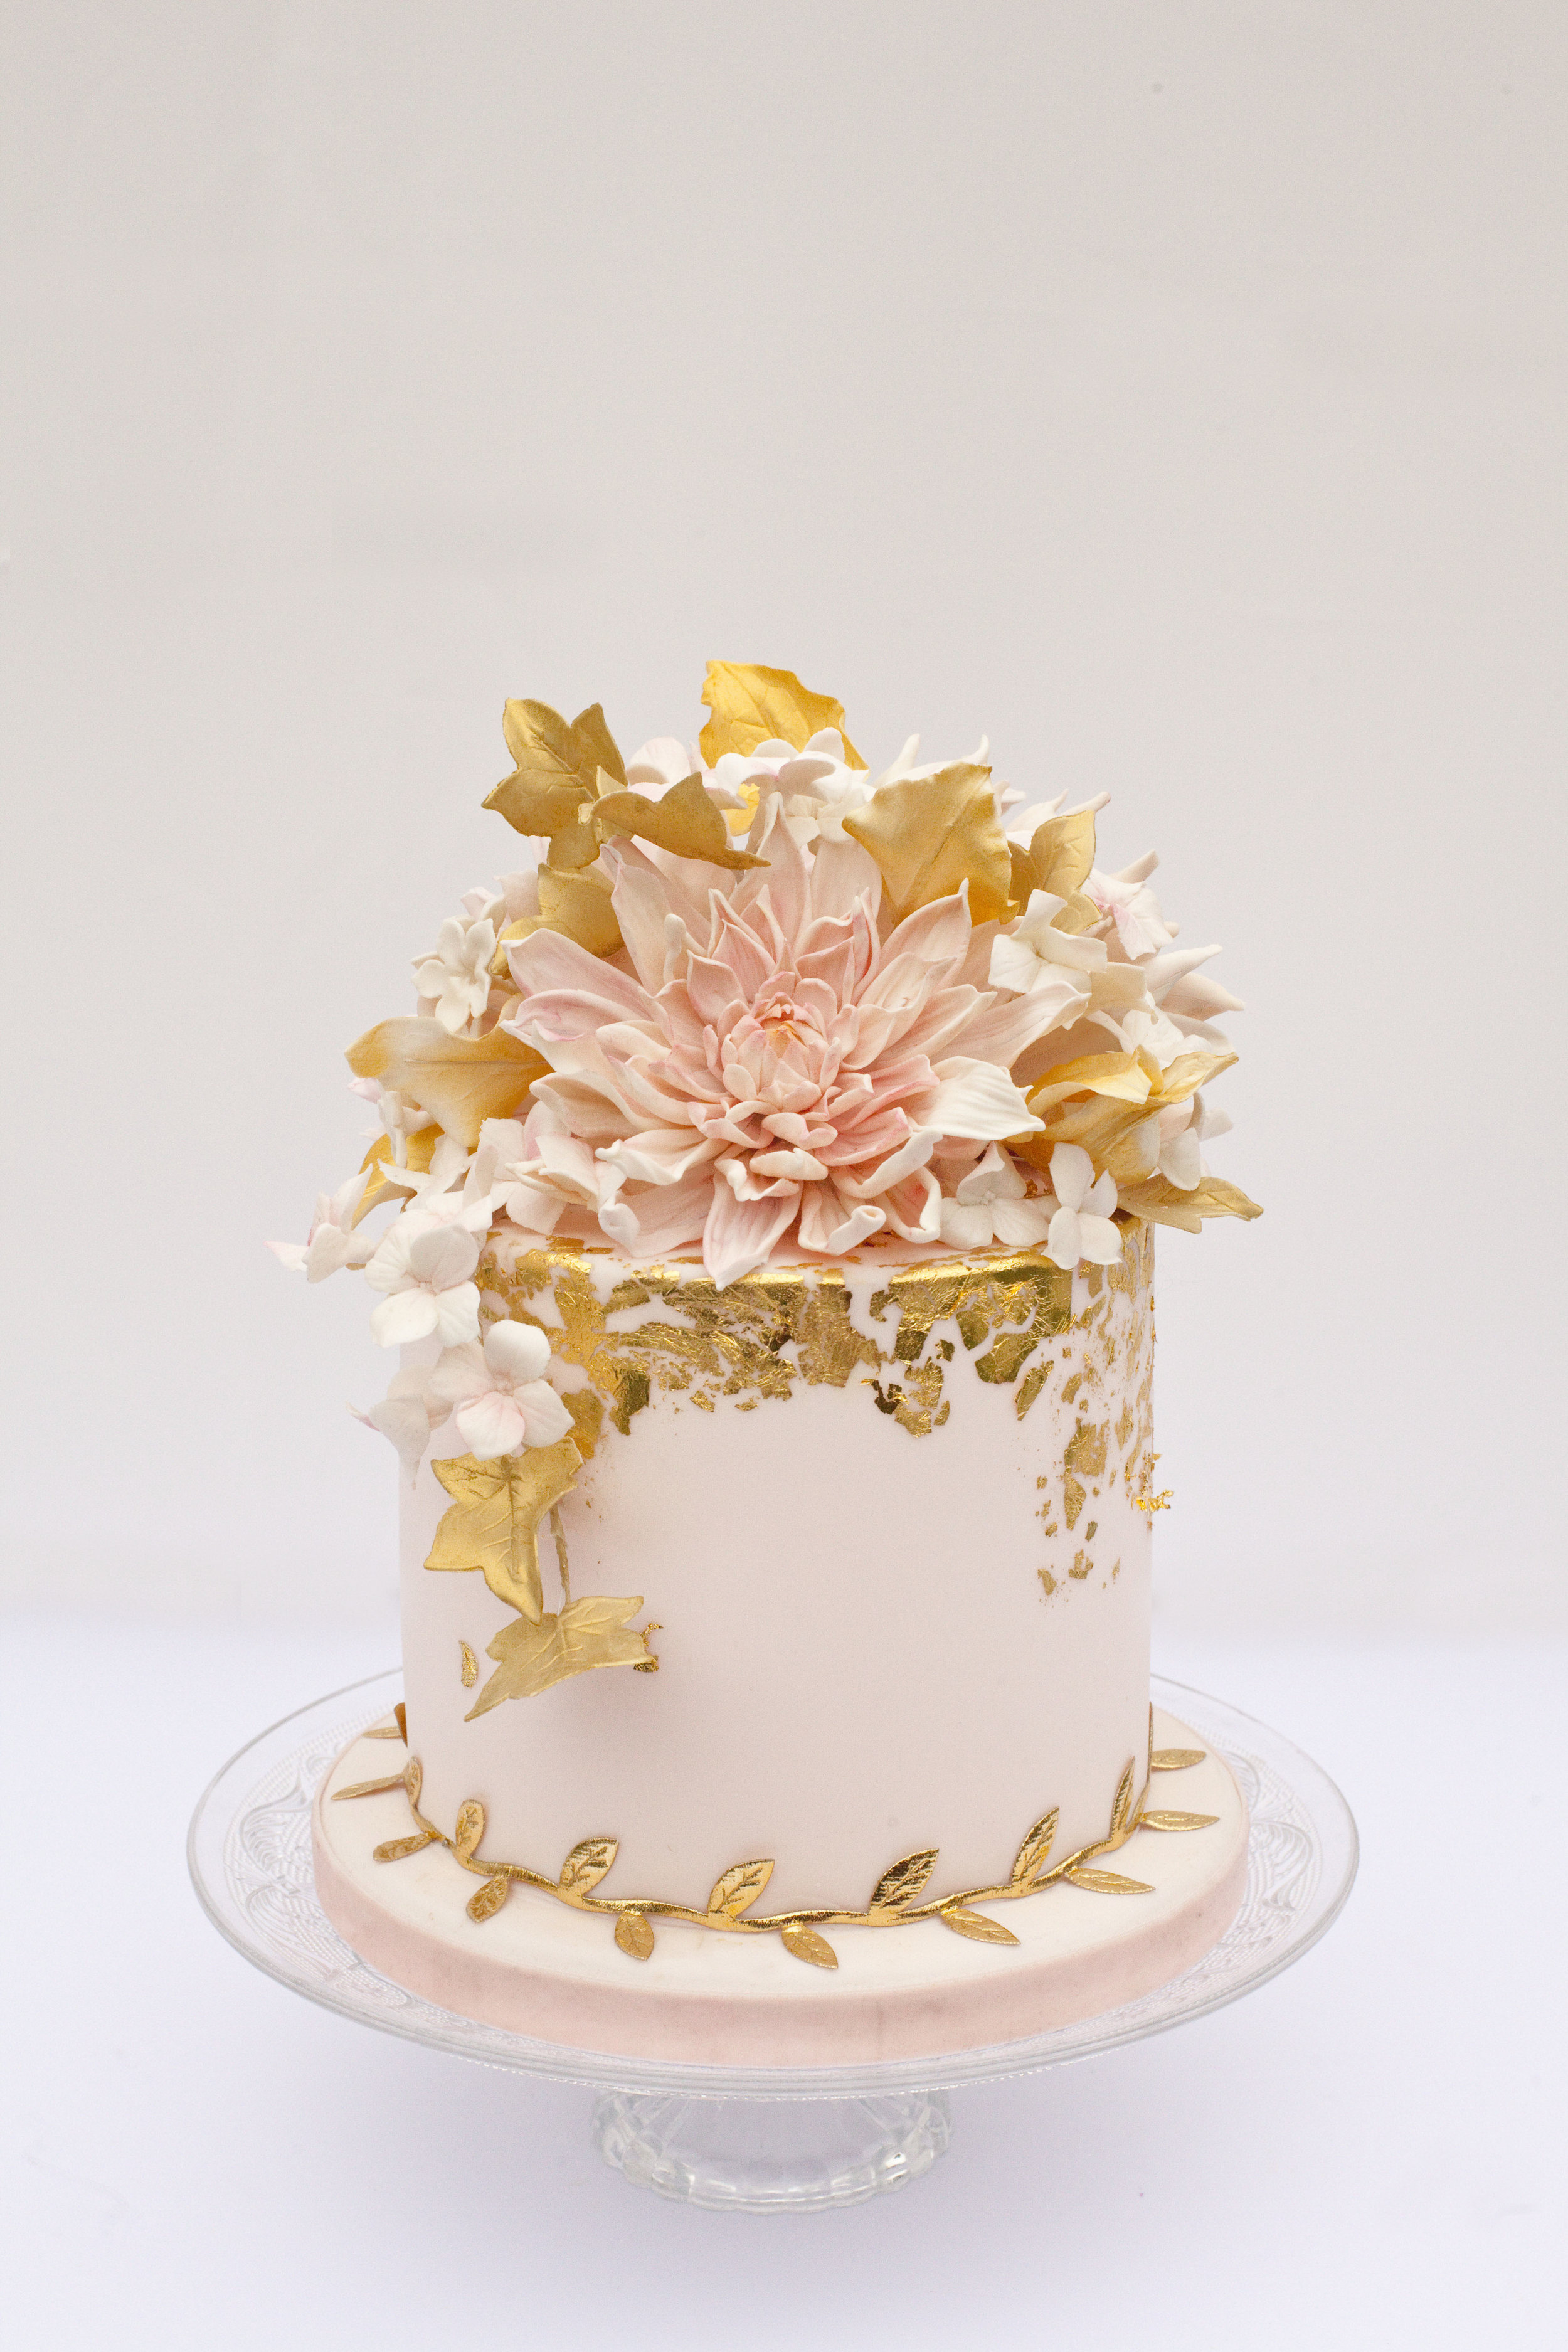 Who say single tiers can't make a statement? Cake: Cakes By Krishanthi, Image by Zosie Zacharia.